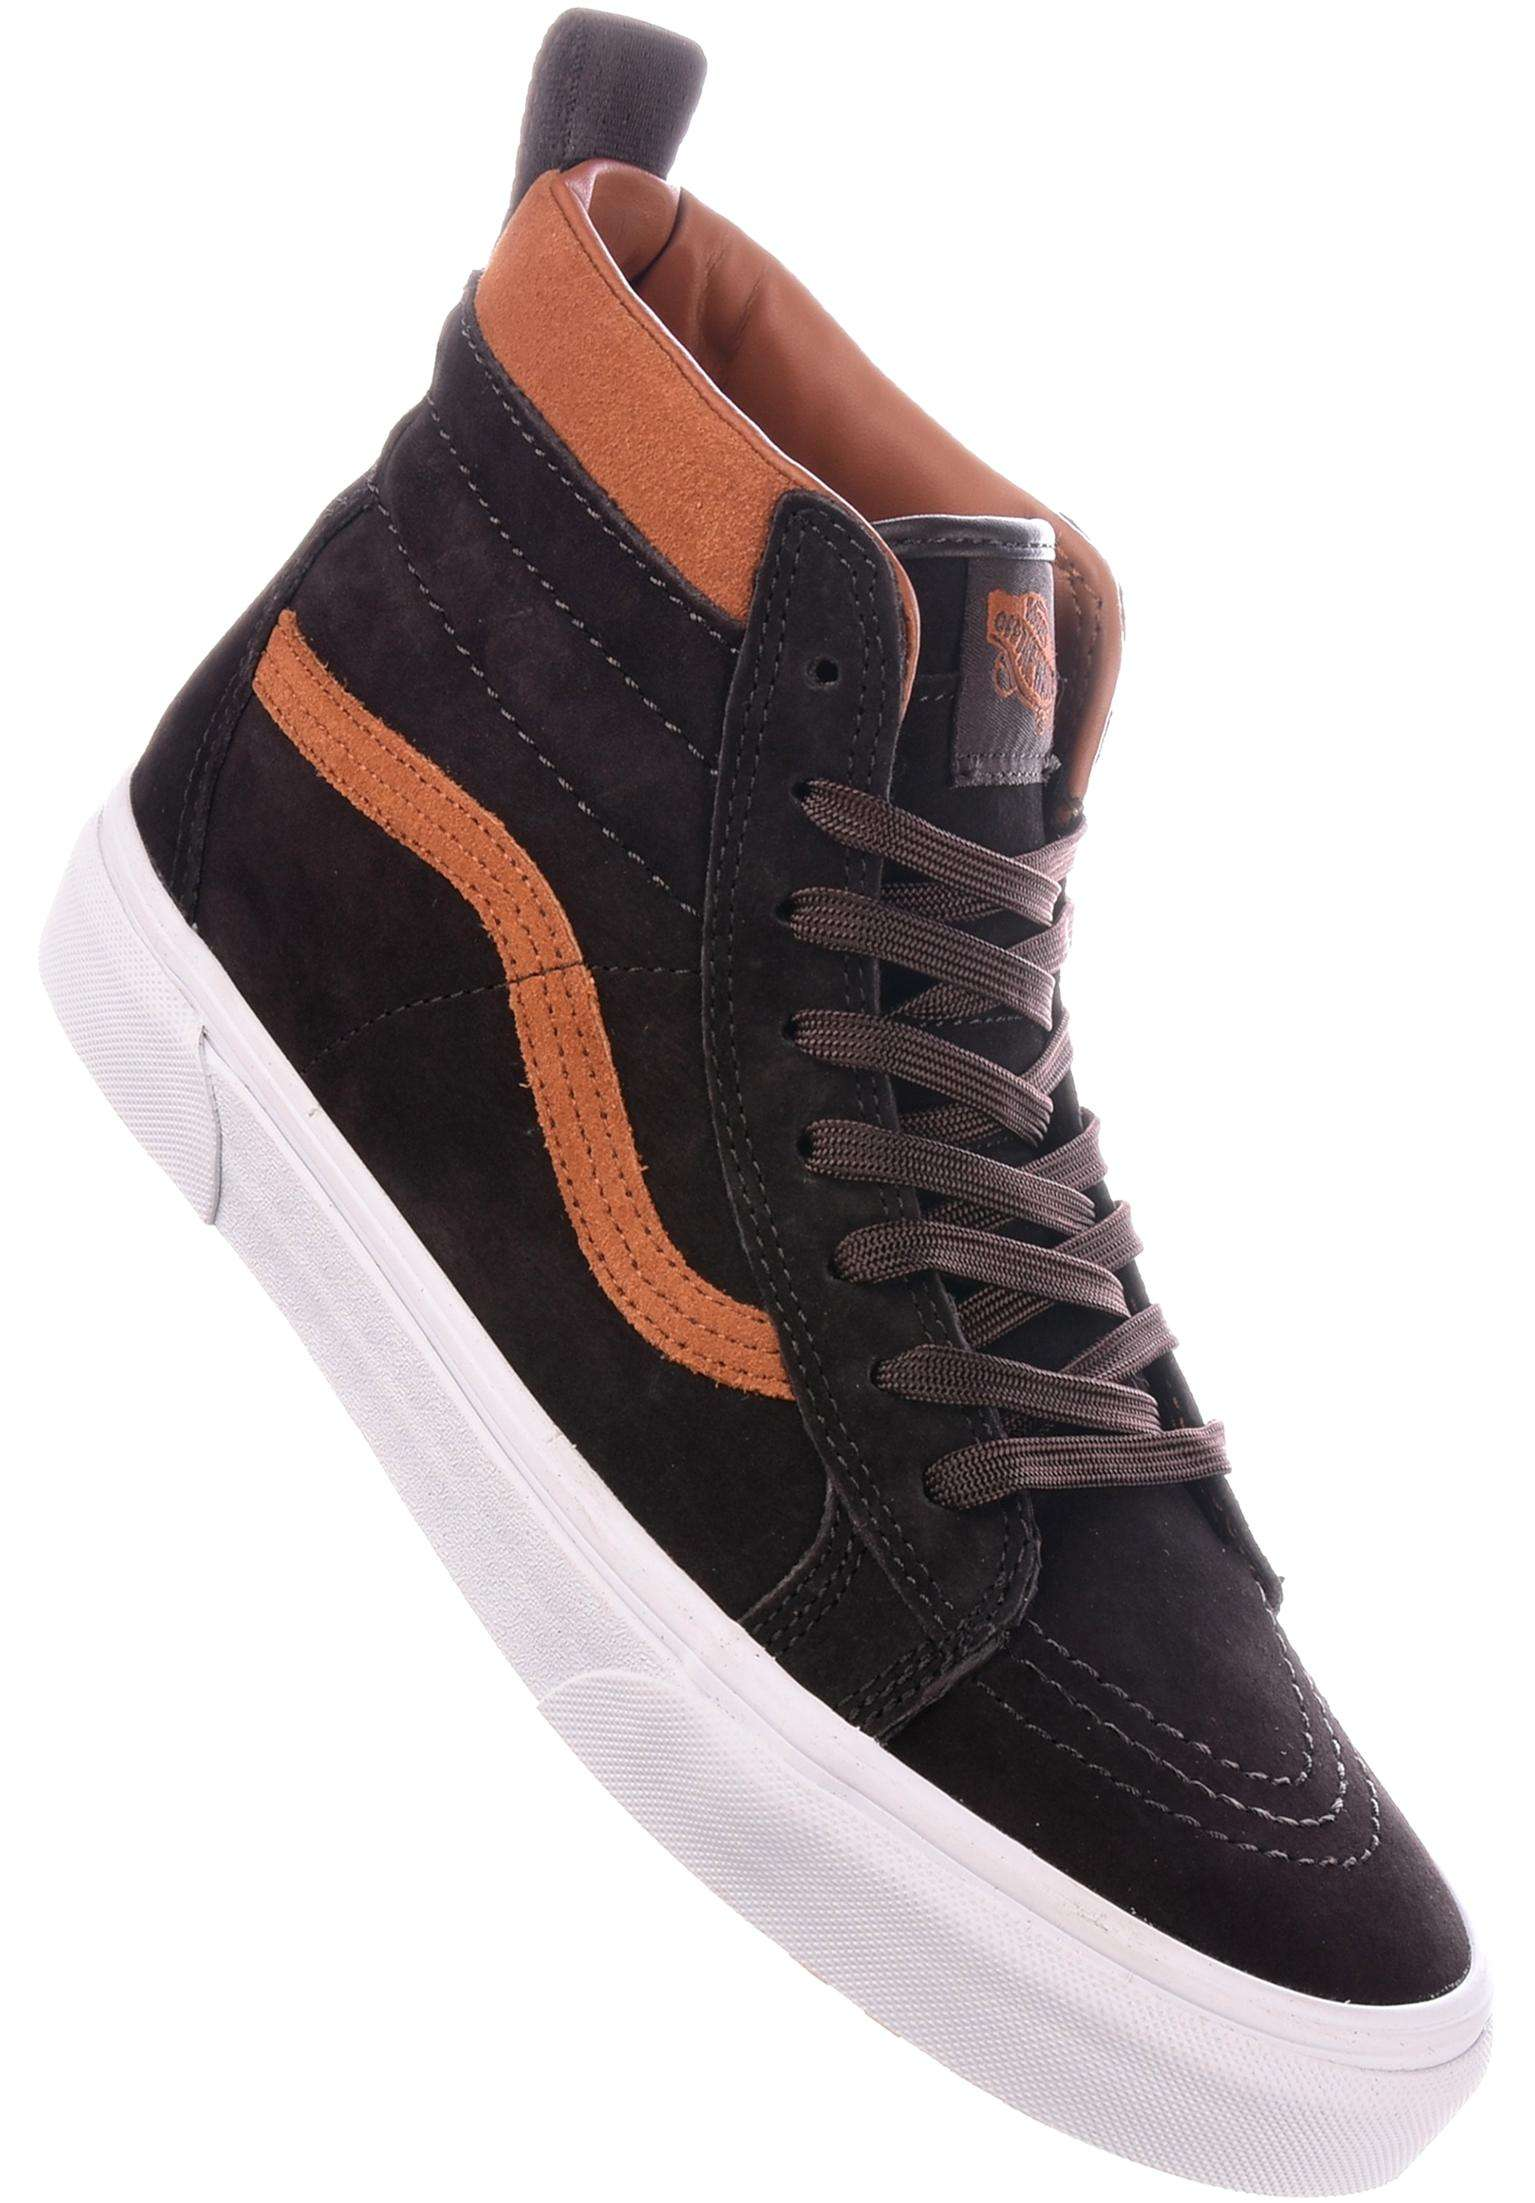 b190157d90c8aa Sk8 Hi MTE Vans All Shoes in chocolate-torte for Men